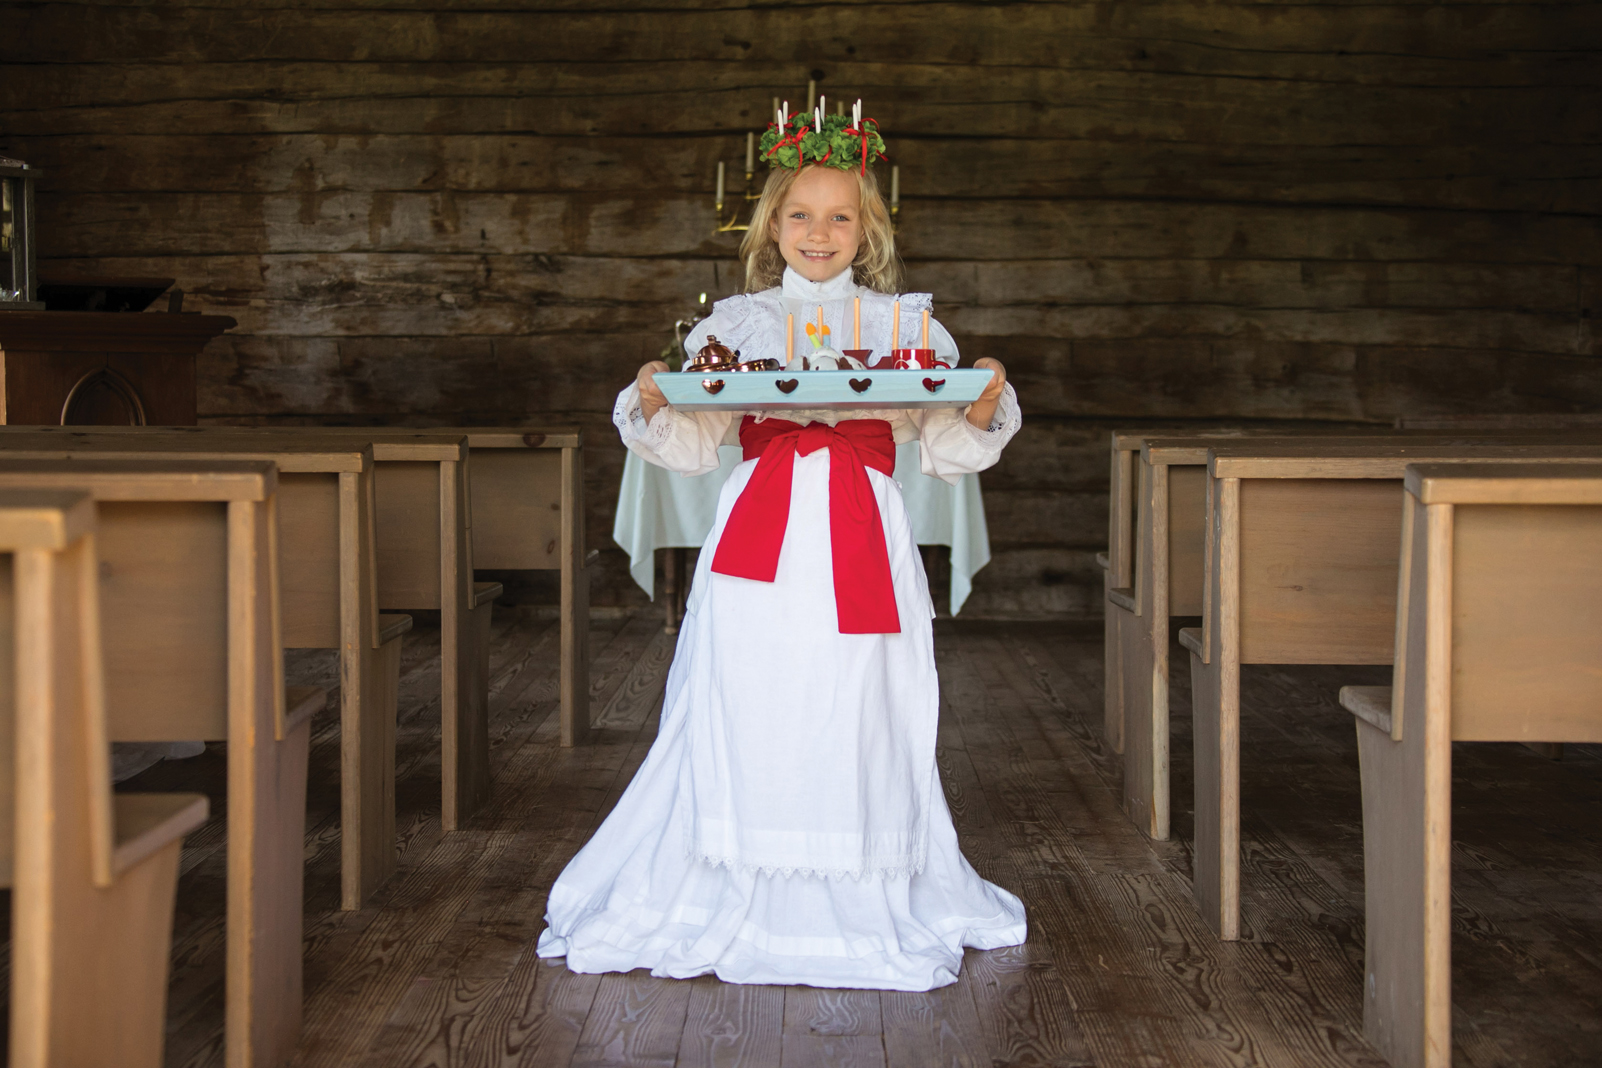 The Swedish Christmas story of Saint Lucia comes alive at the Gammelgården